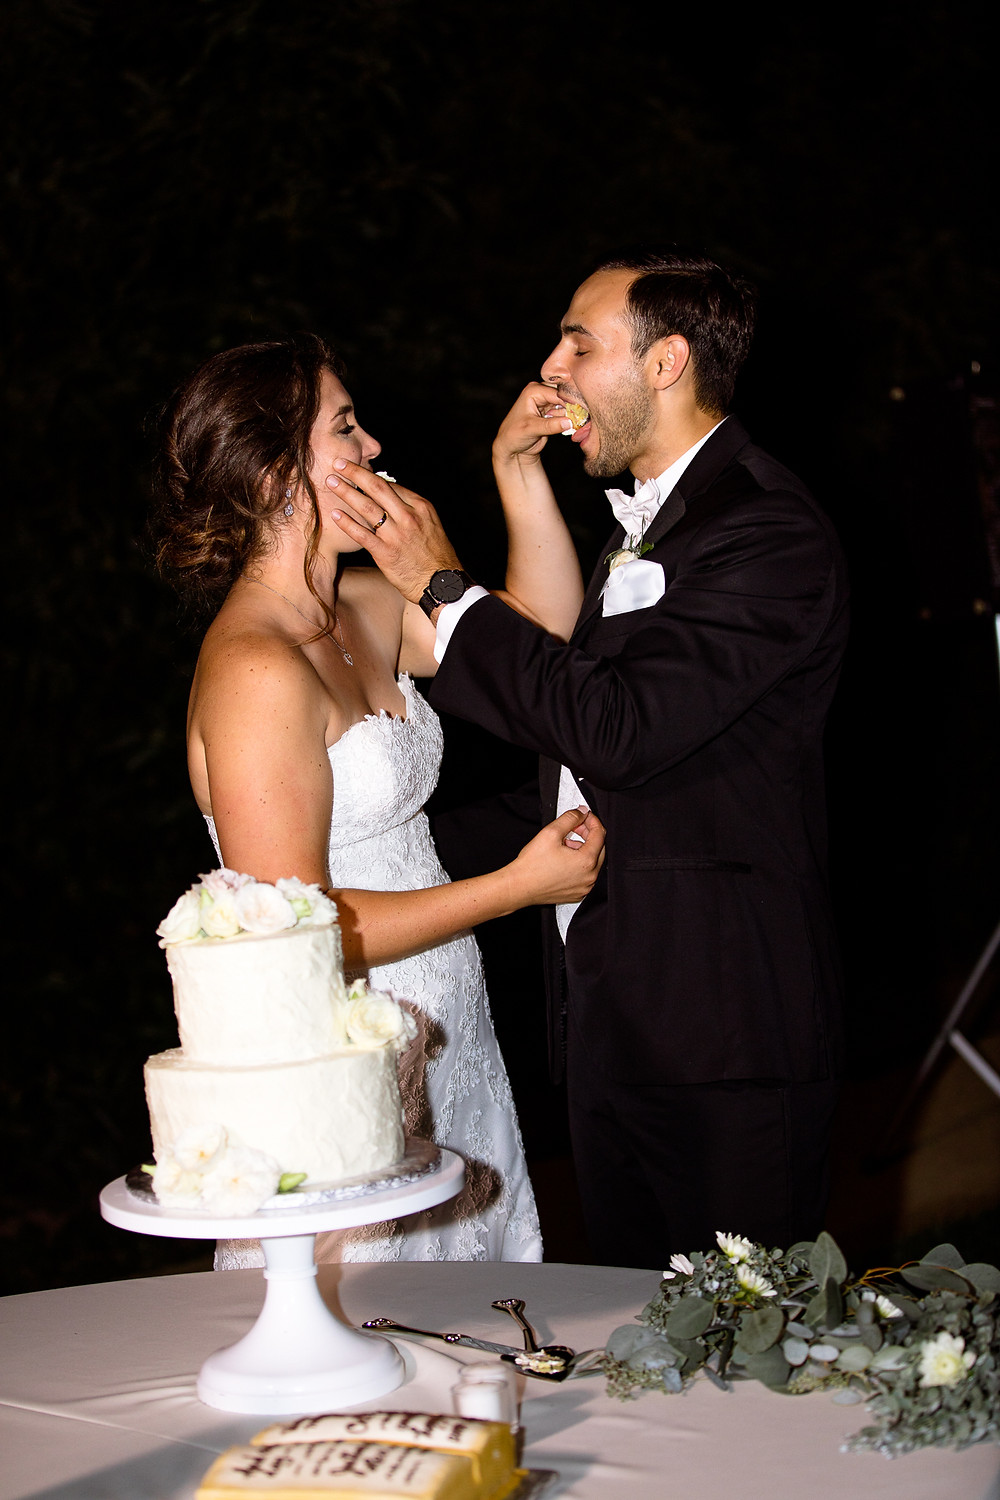 bride and groom feed each other a piece of their wedding cake